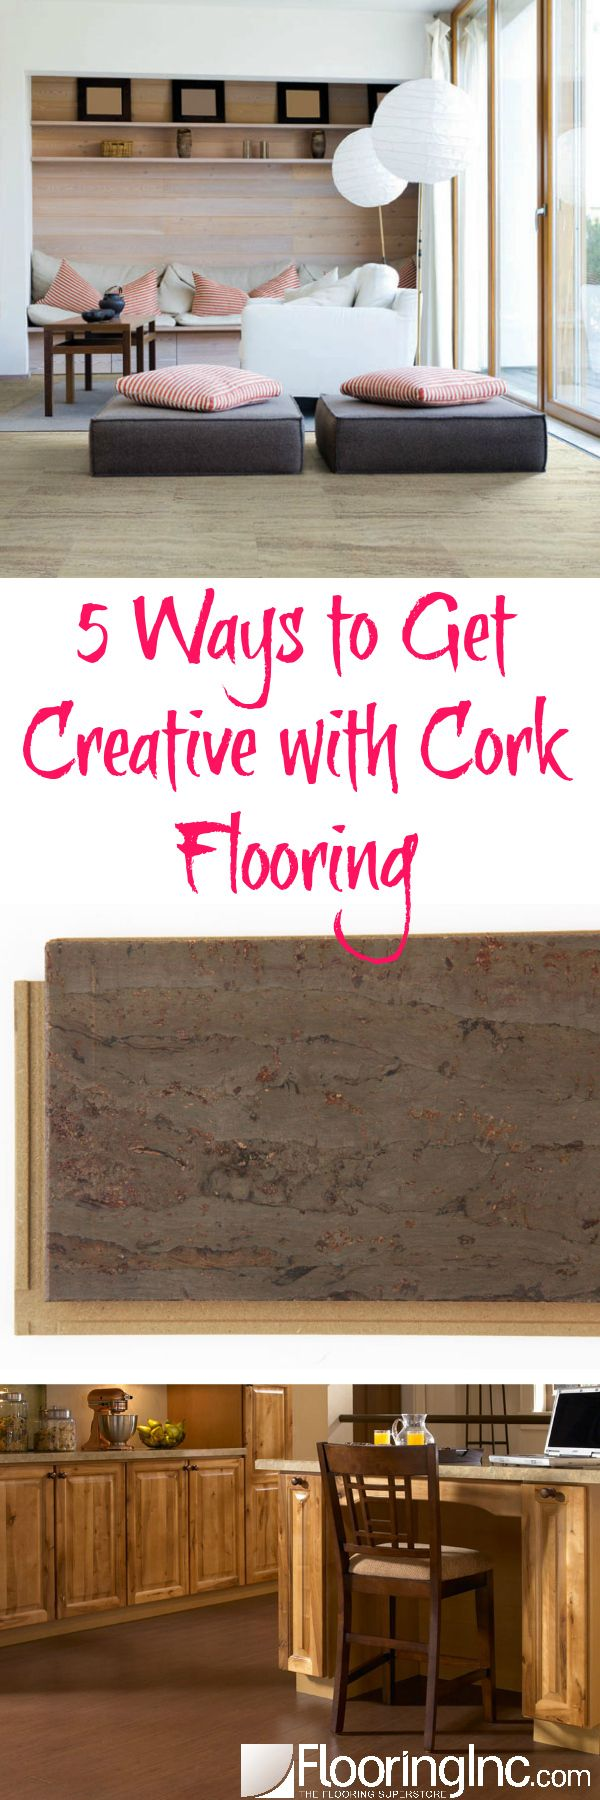 Is Cork Flooring Good For Kitchens 41 Best Images About Cork Flooring On Pinterest Cork Flooring